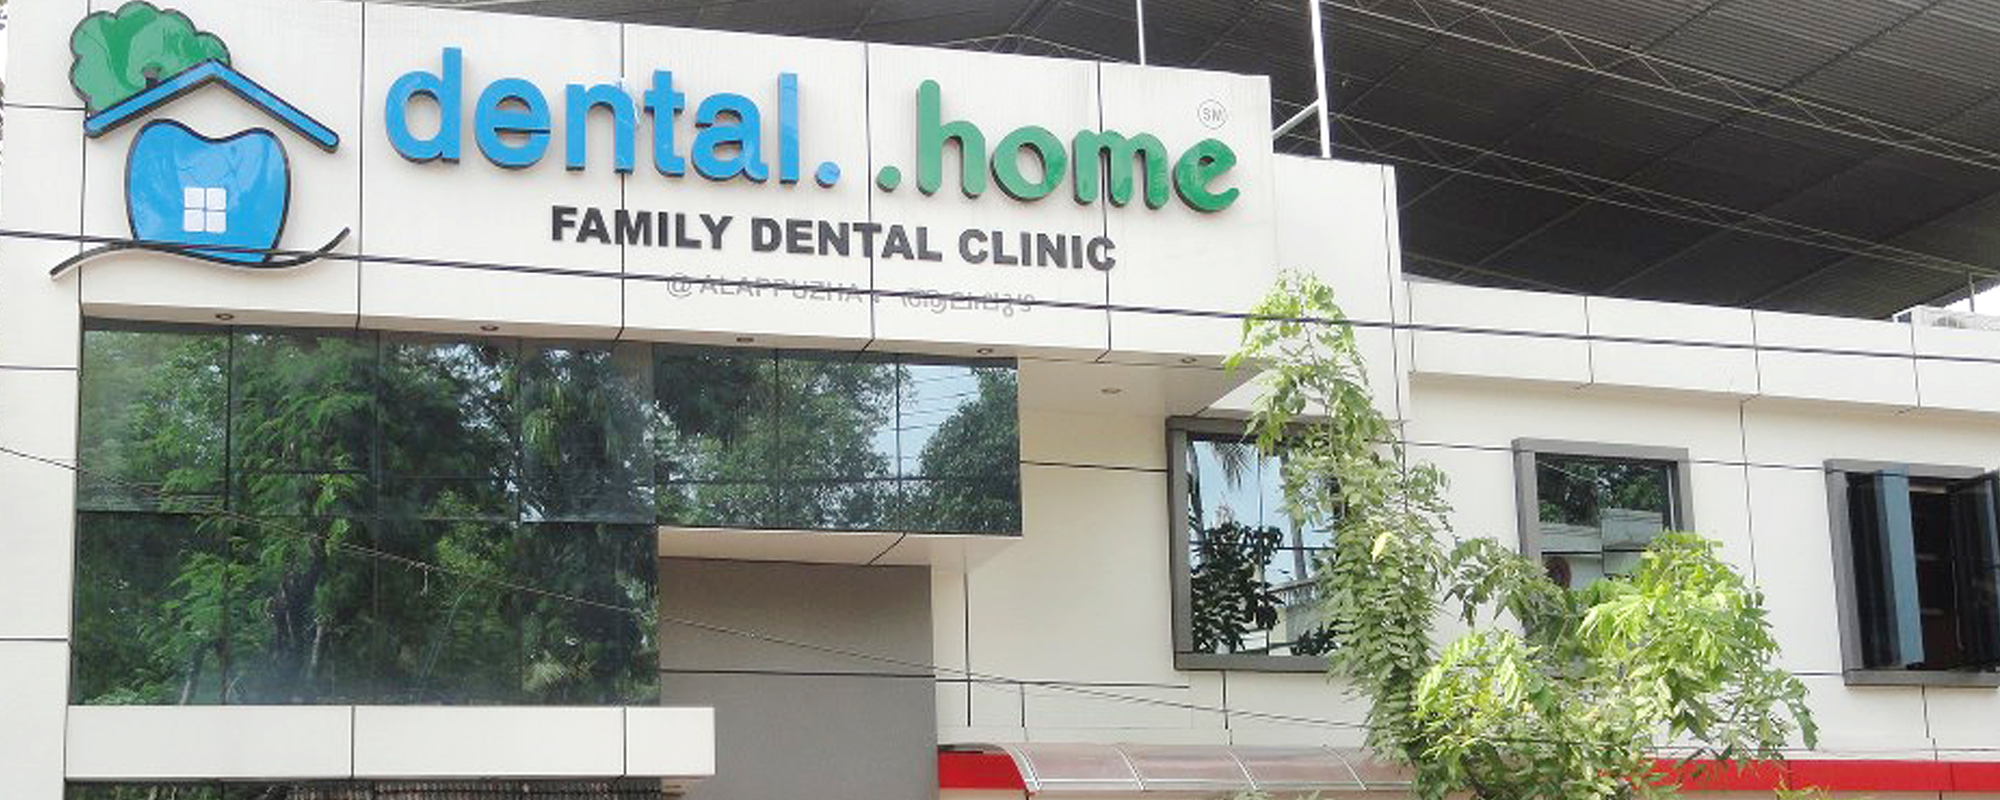 dental home